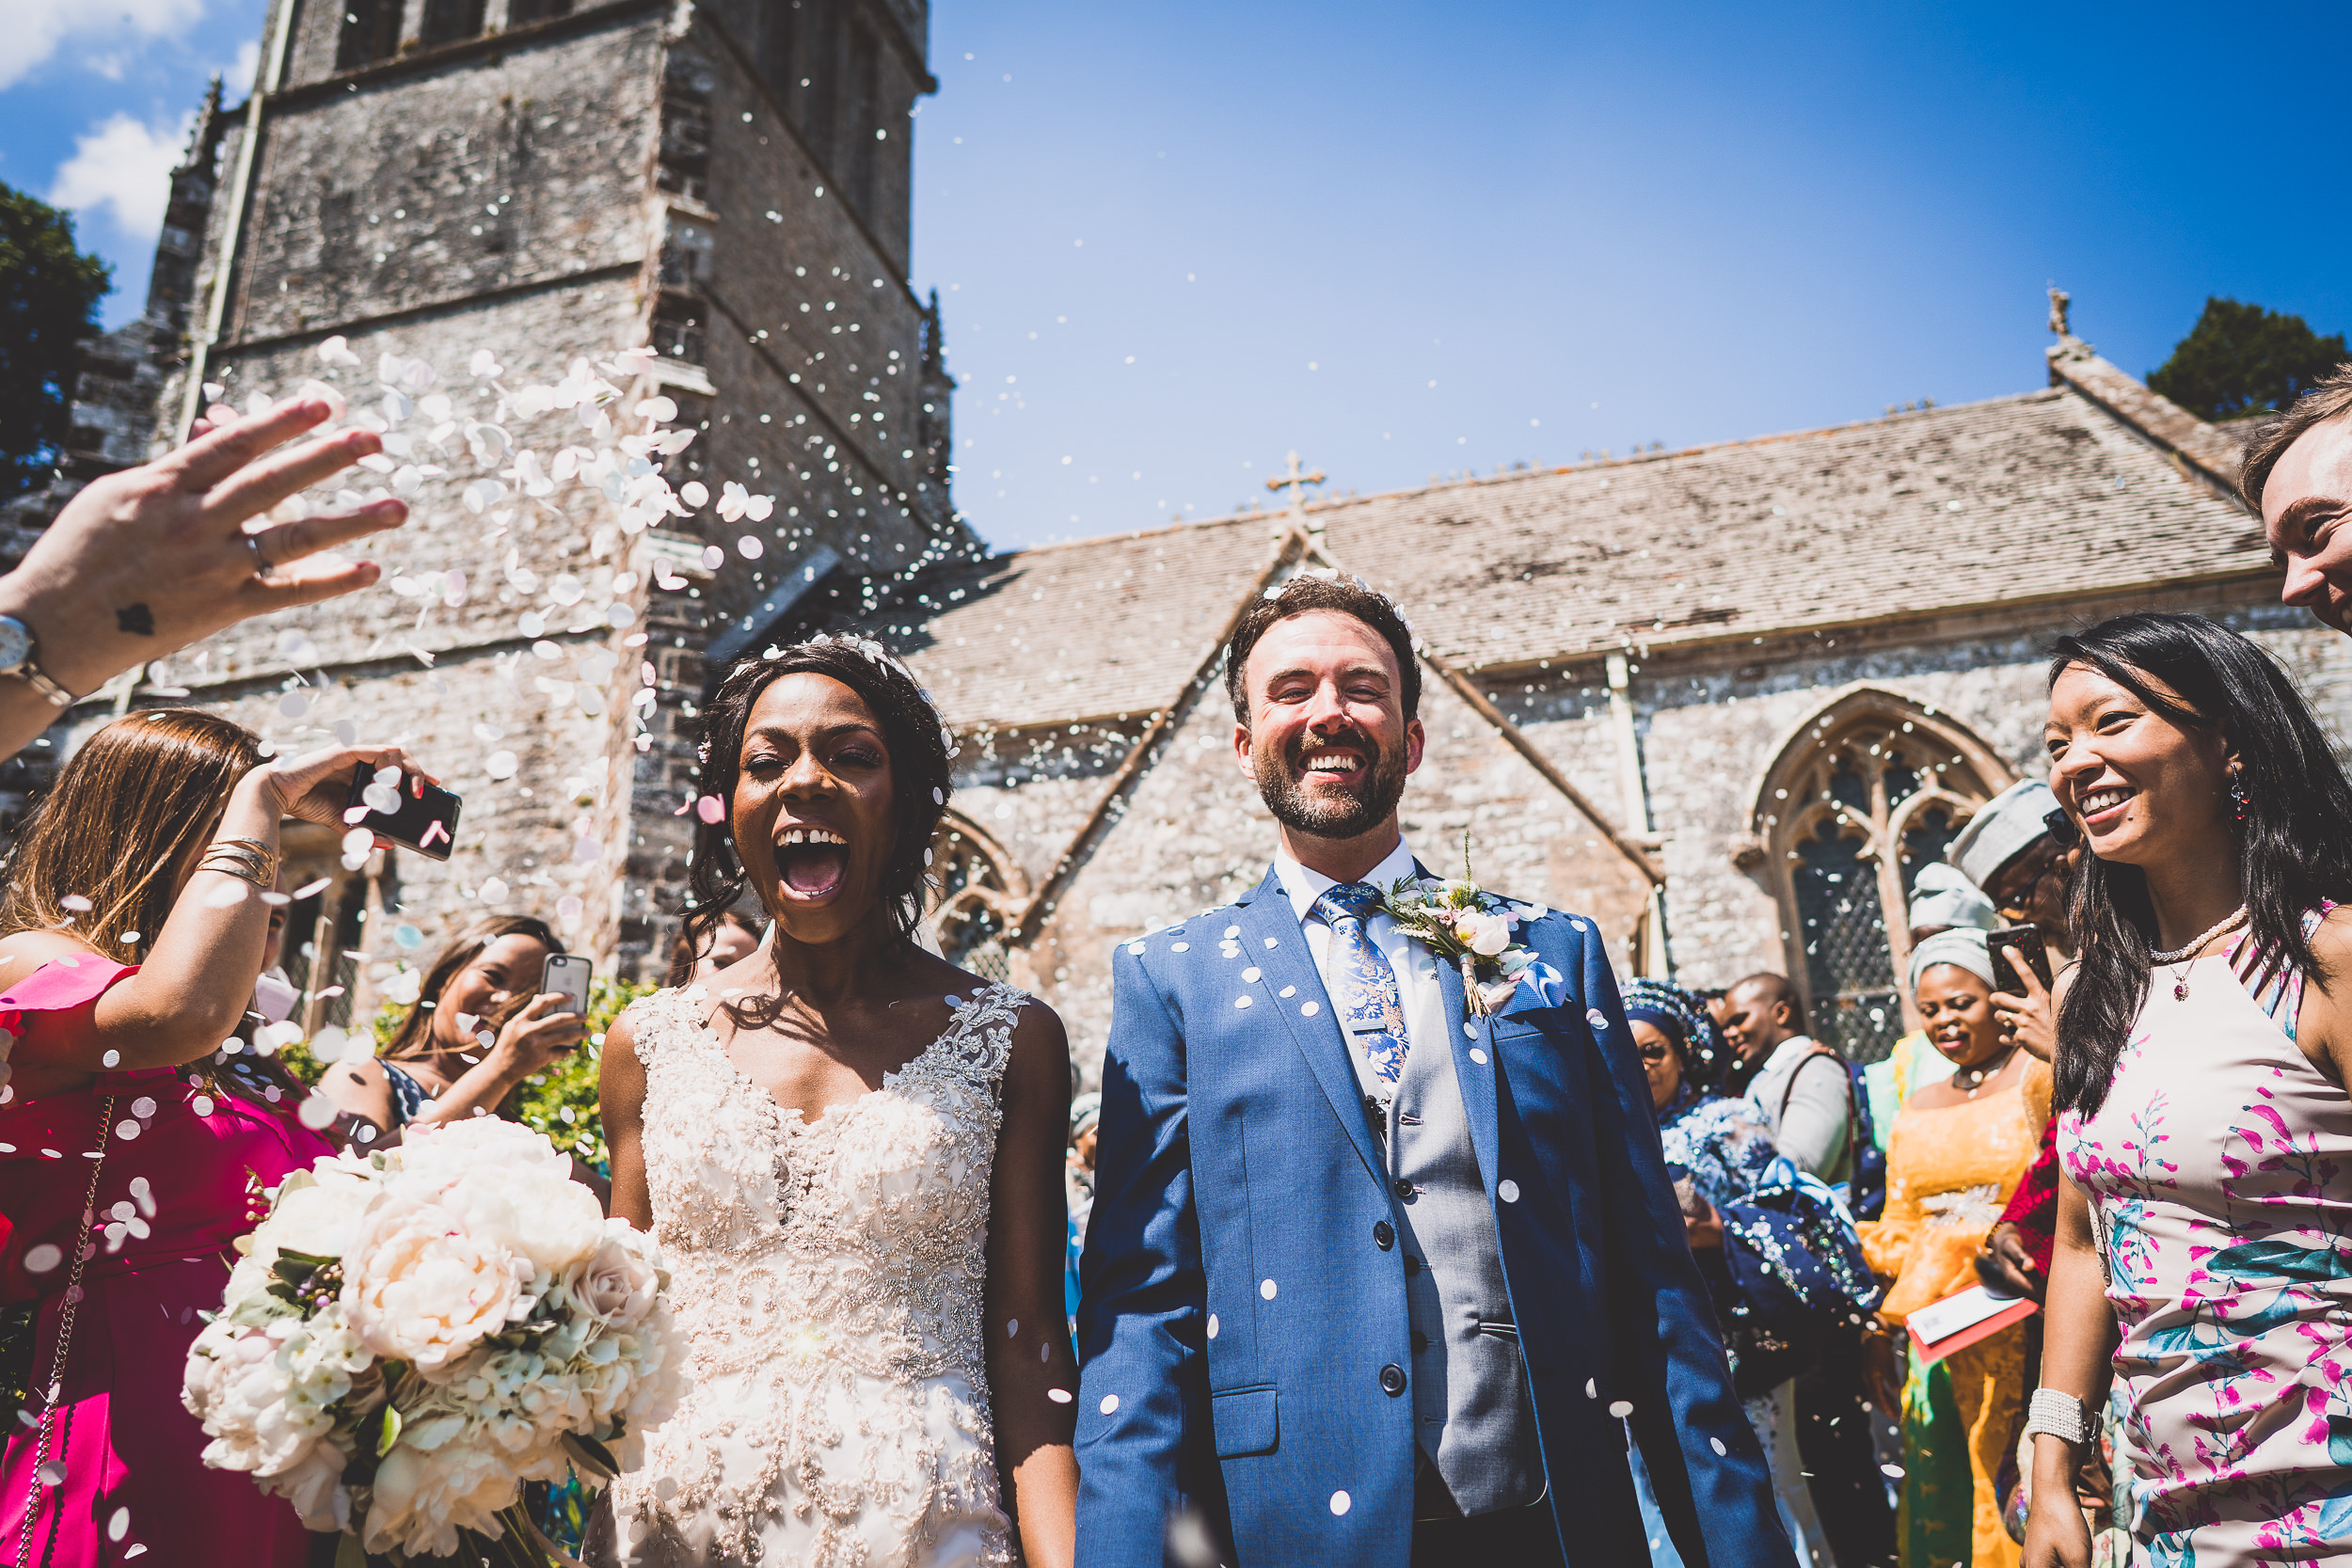 Lulworth Castle Wedding Photography | Amina & David Amina David ss 039